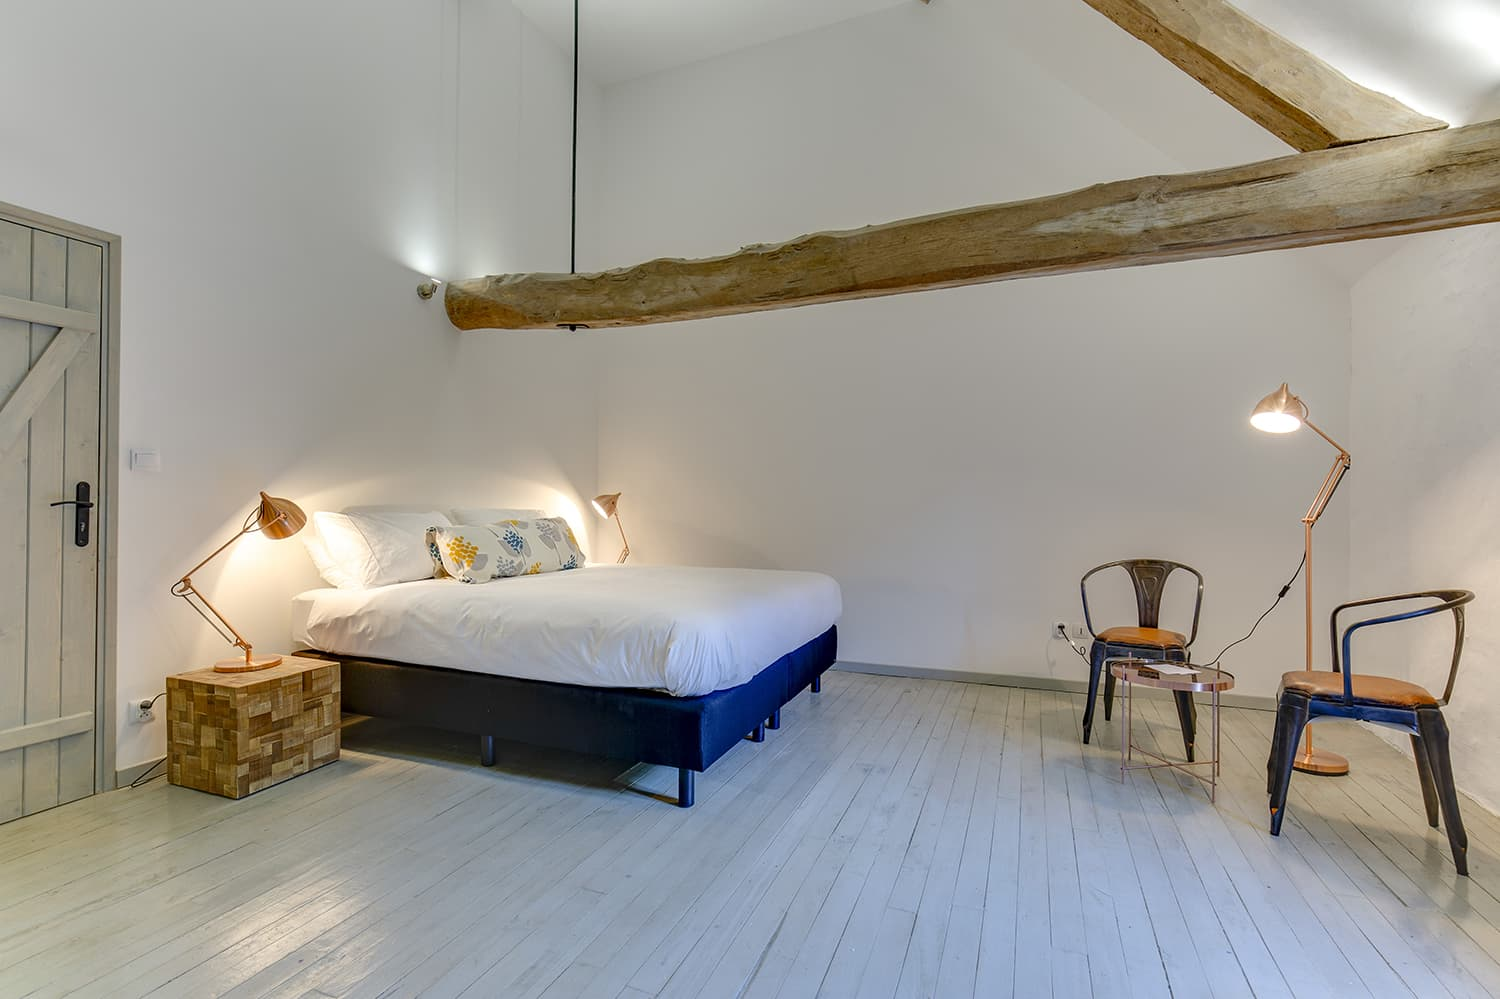 Bedroom in Saint-Avit-Sénieur holiday accommodation